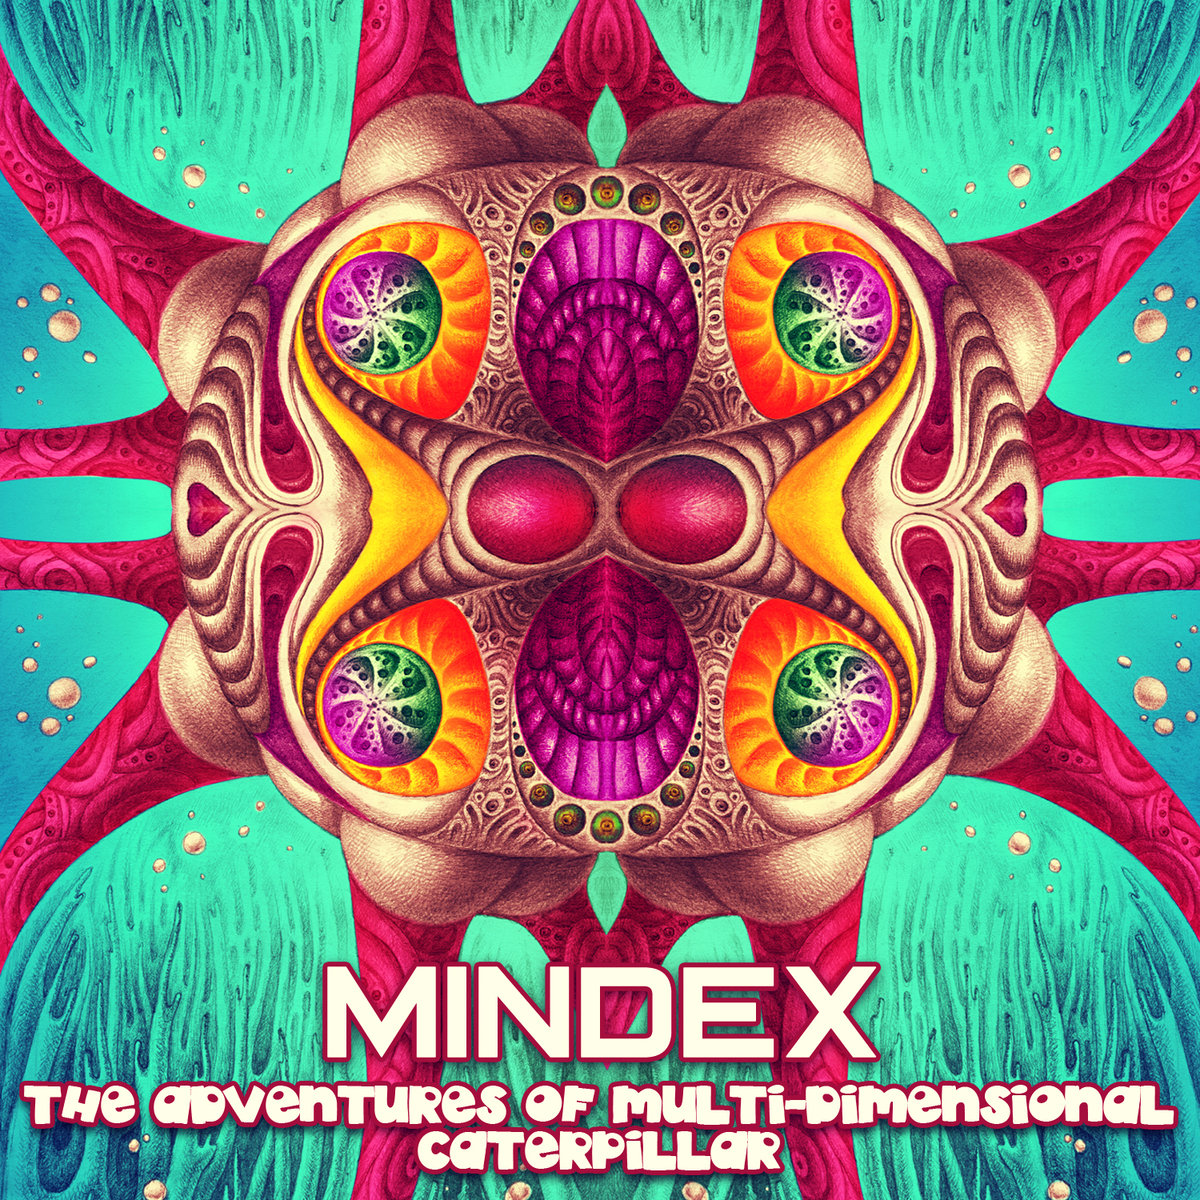 Mindex feat. Do - Spring Madness @ 'The Adventures of Multi-Dimensional Caterpillar' album (drum & bass, electronic)